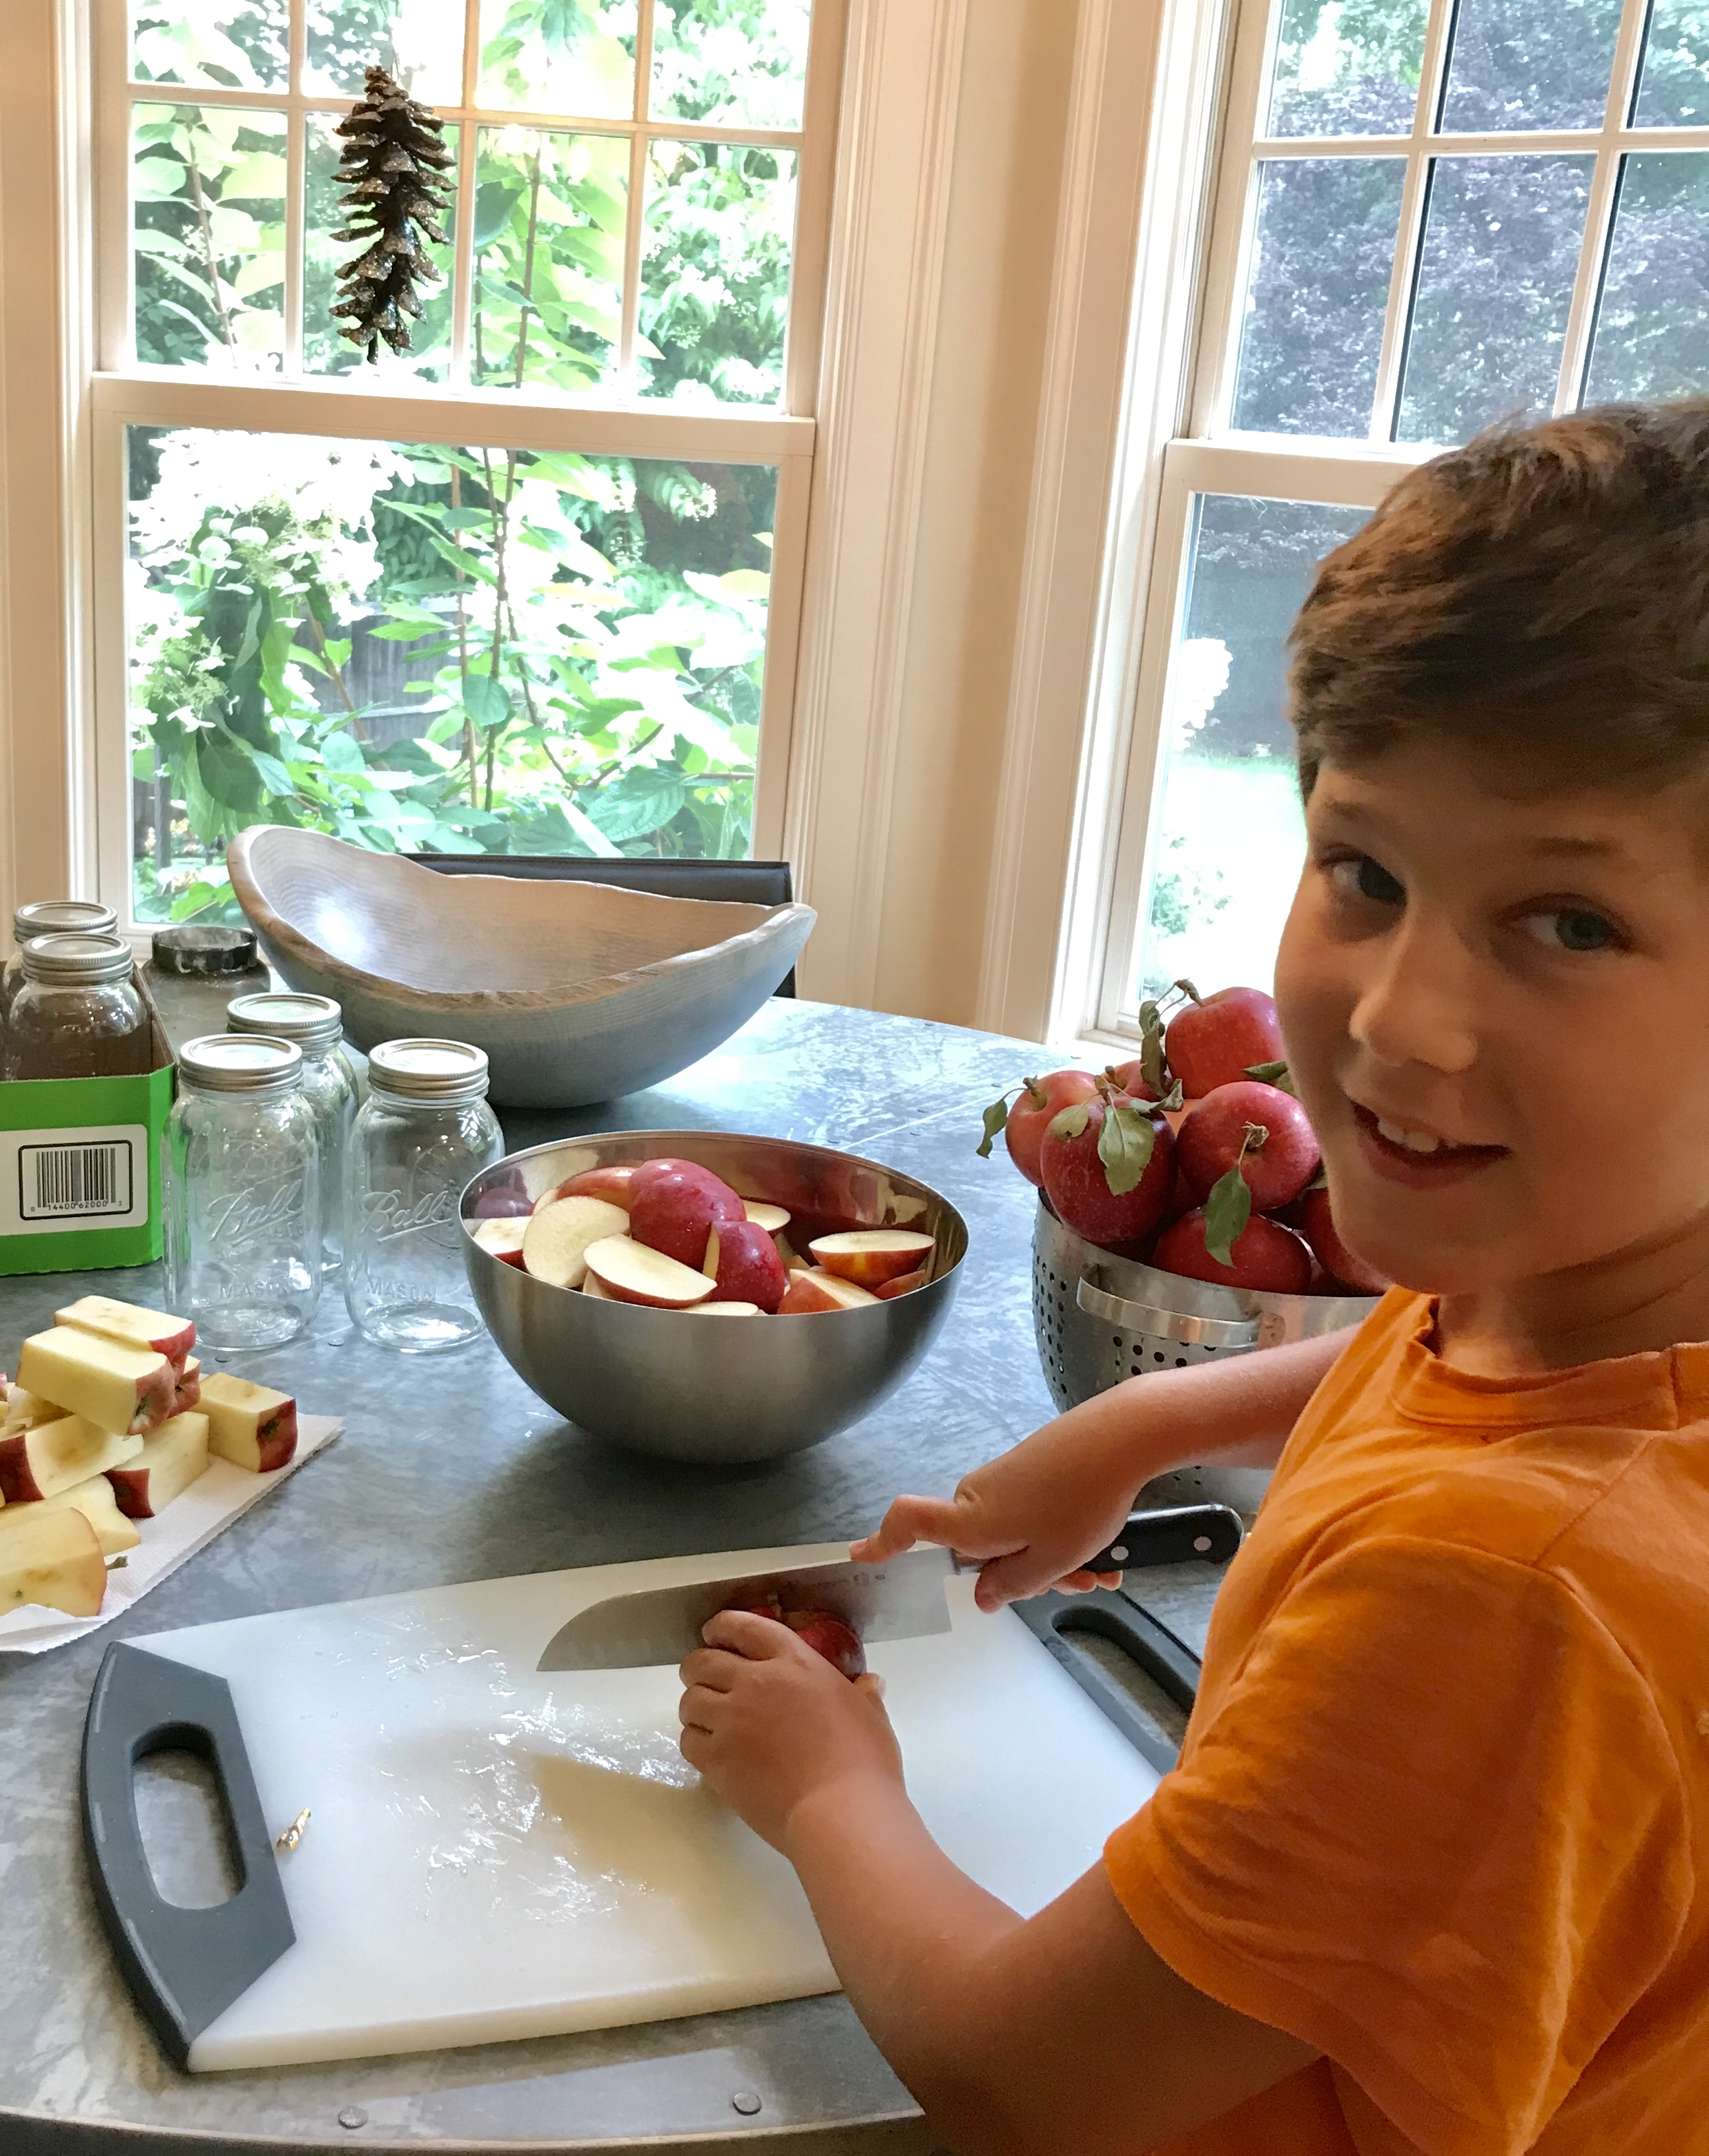 Chopping apples for Thanksgiving pies and fresh apple sauce!